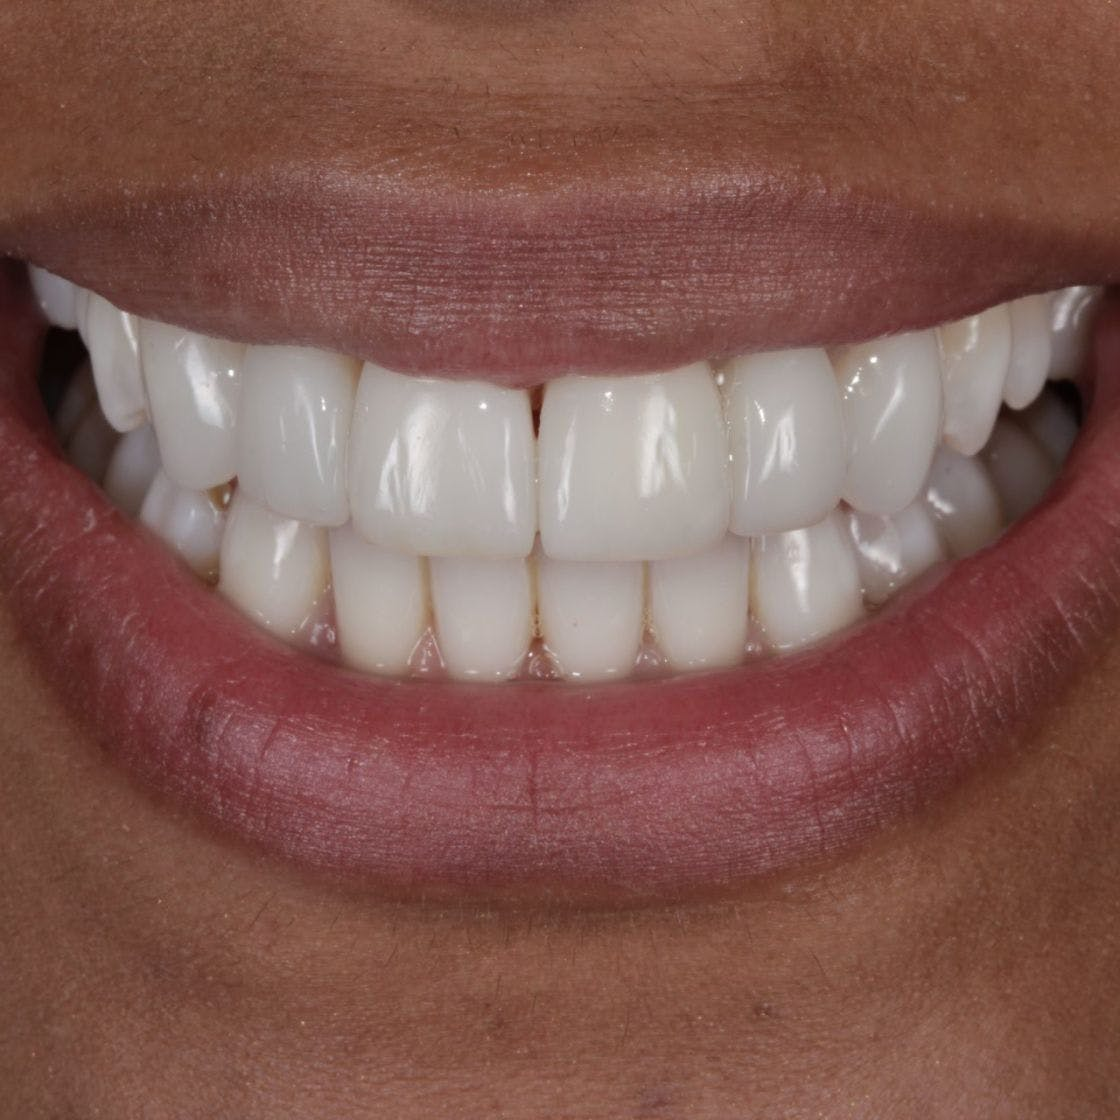 Woman's smile and teeth after composite bonding treatment